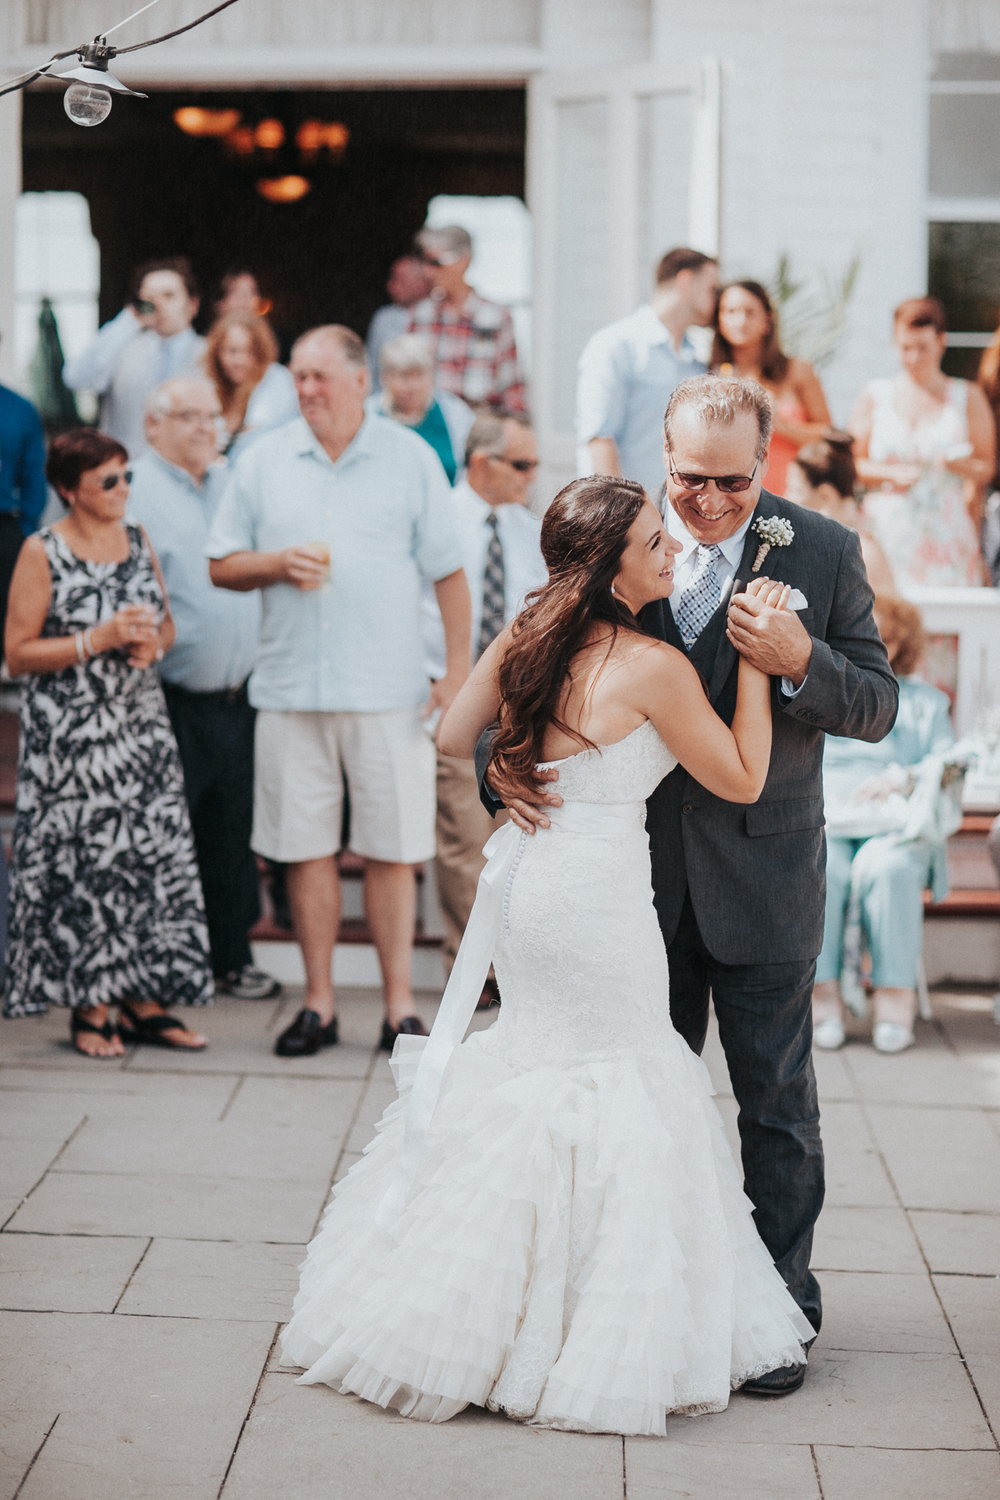 The bride dancing with her father as the reception opens